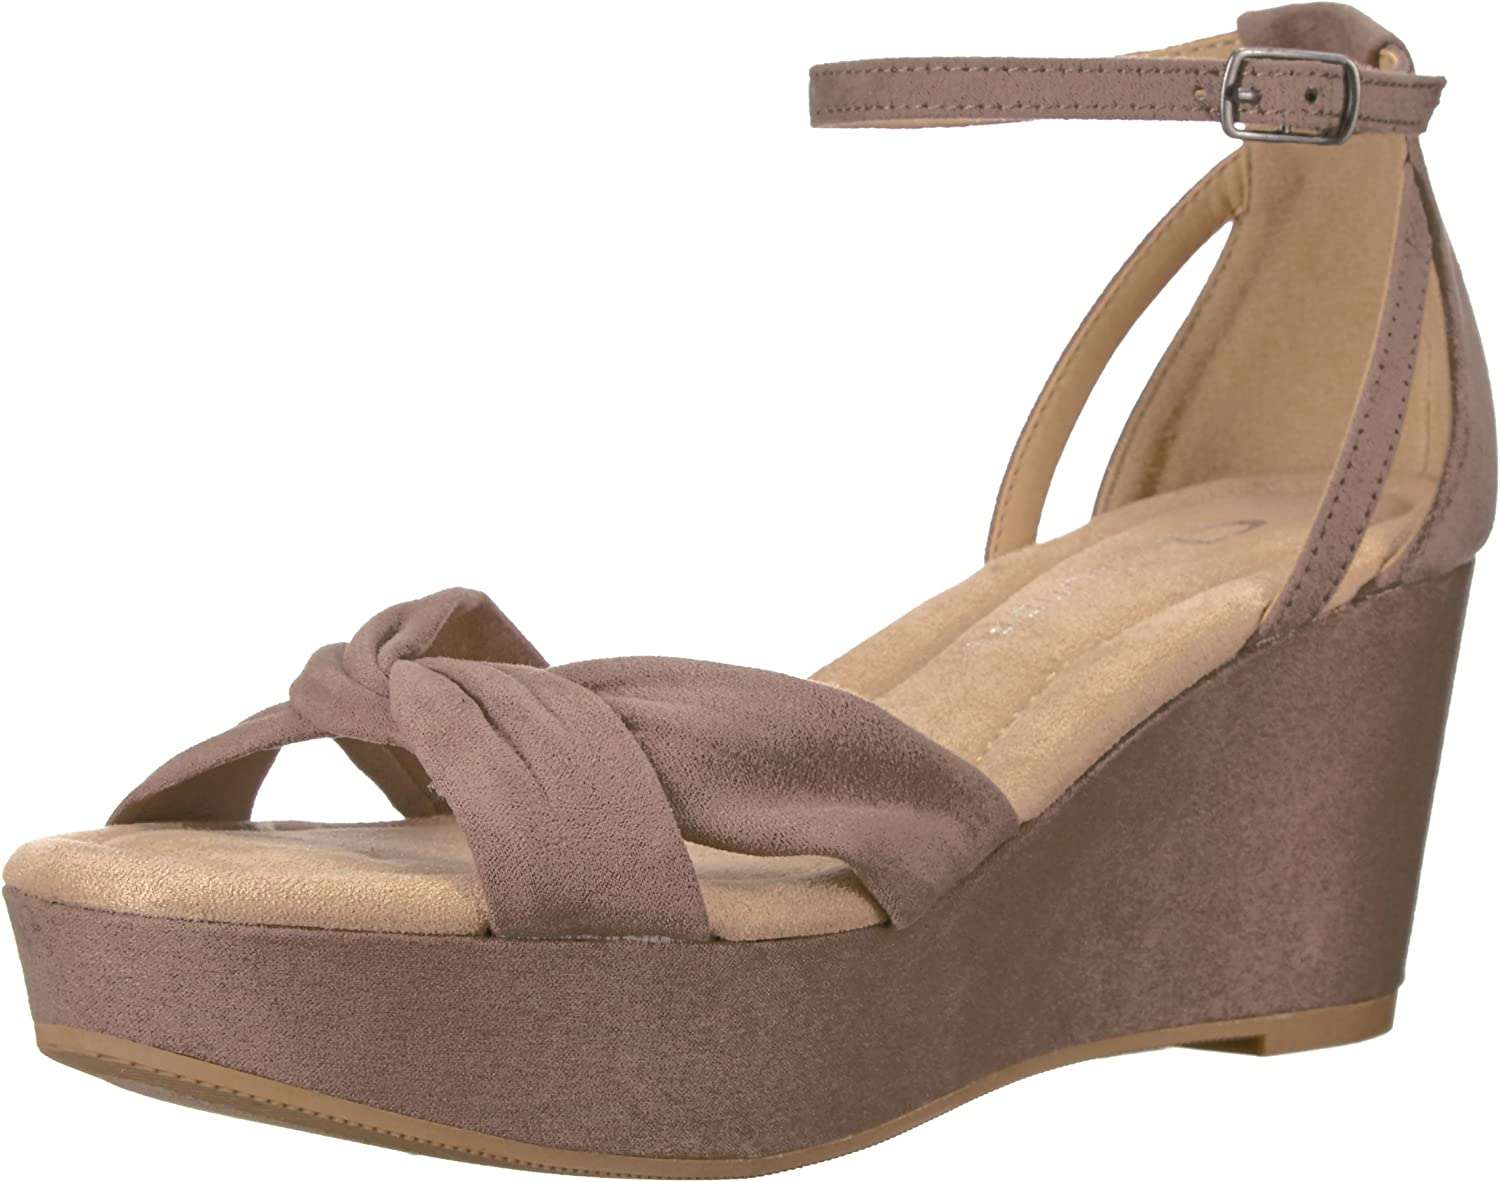 CL by Chinese Laundry Women's Devin Wedge Sandal